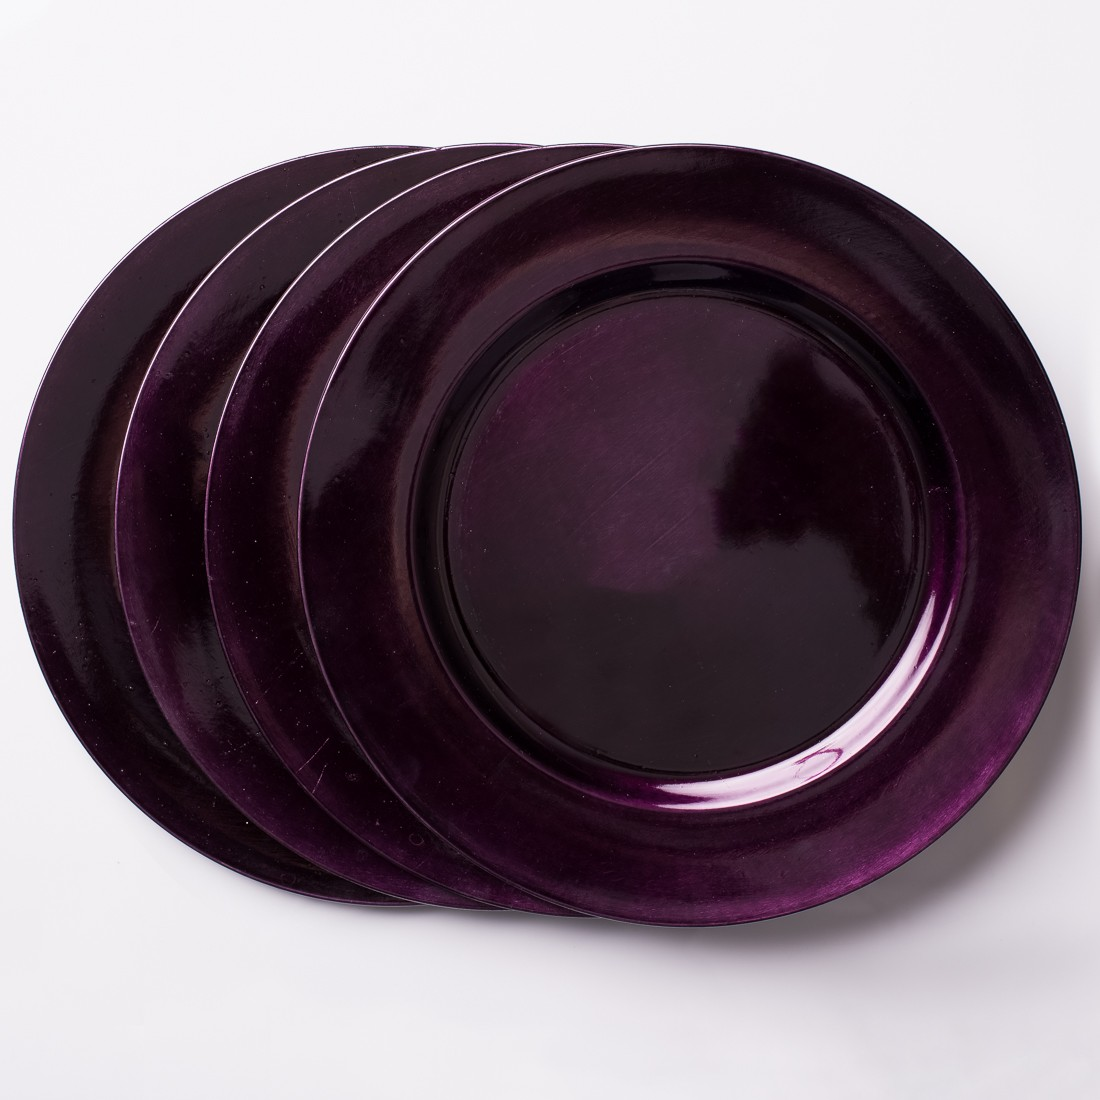 Plate Chargers | Plate Chargers Wholesale | Decorative Charger Plates